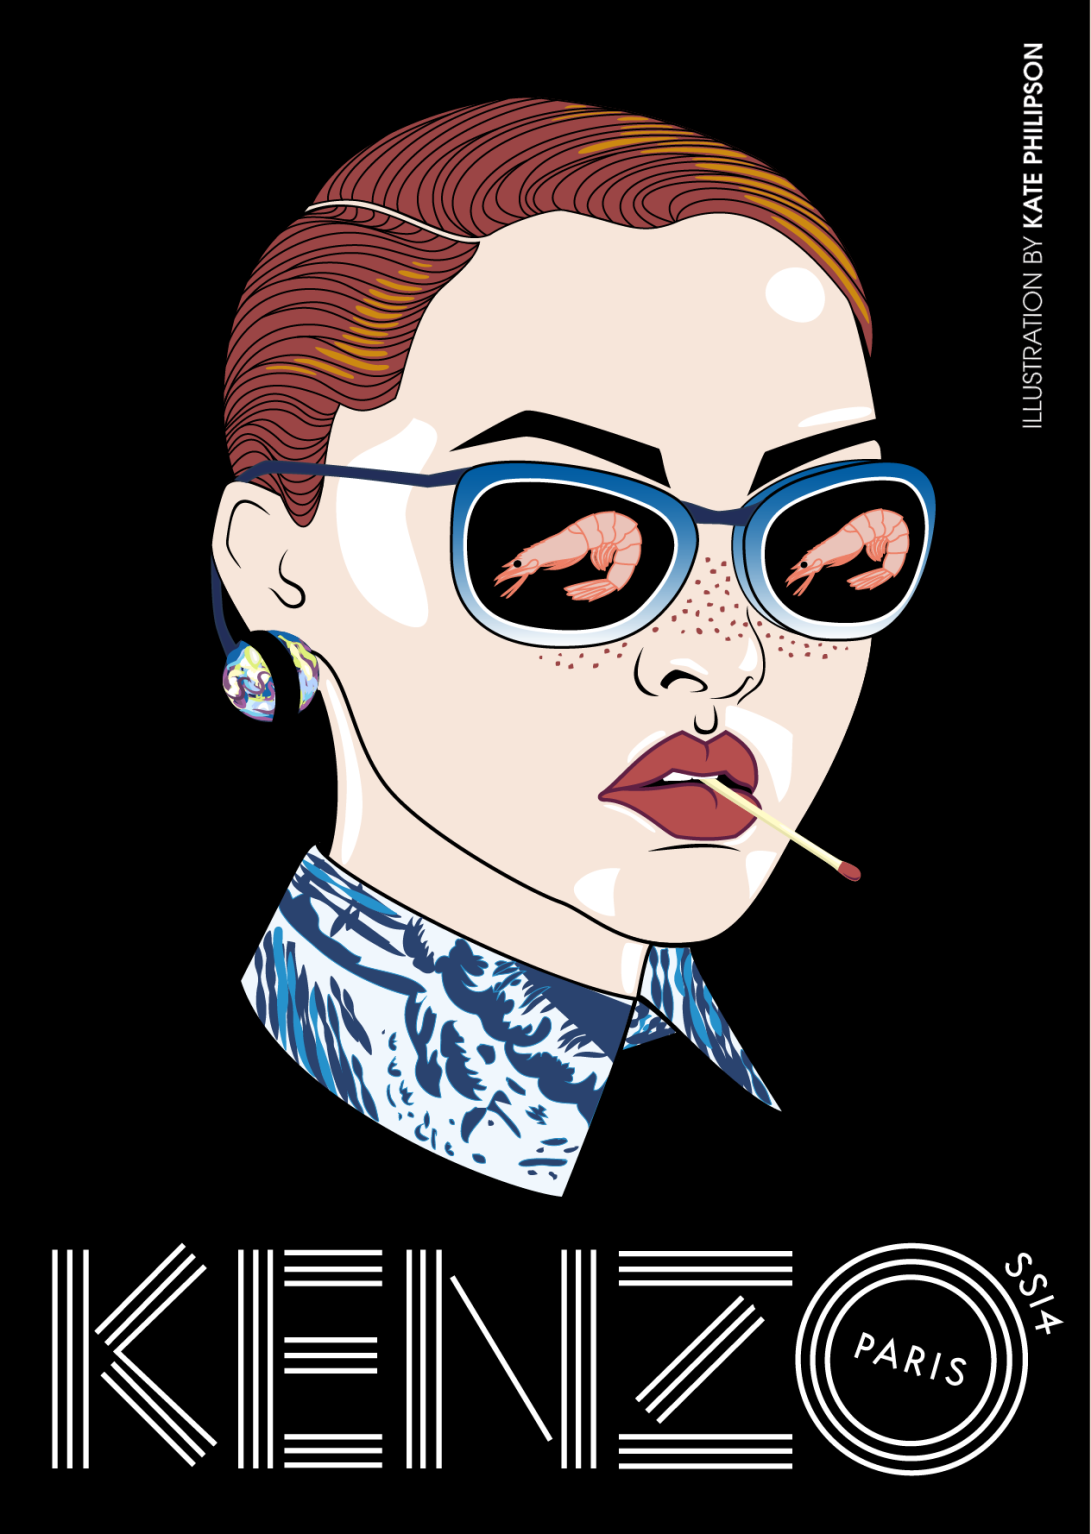 Kenzo SS14 - illustration by Kate Philipson